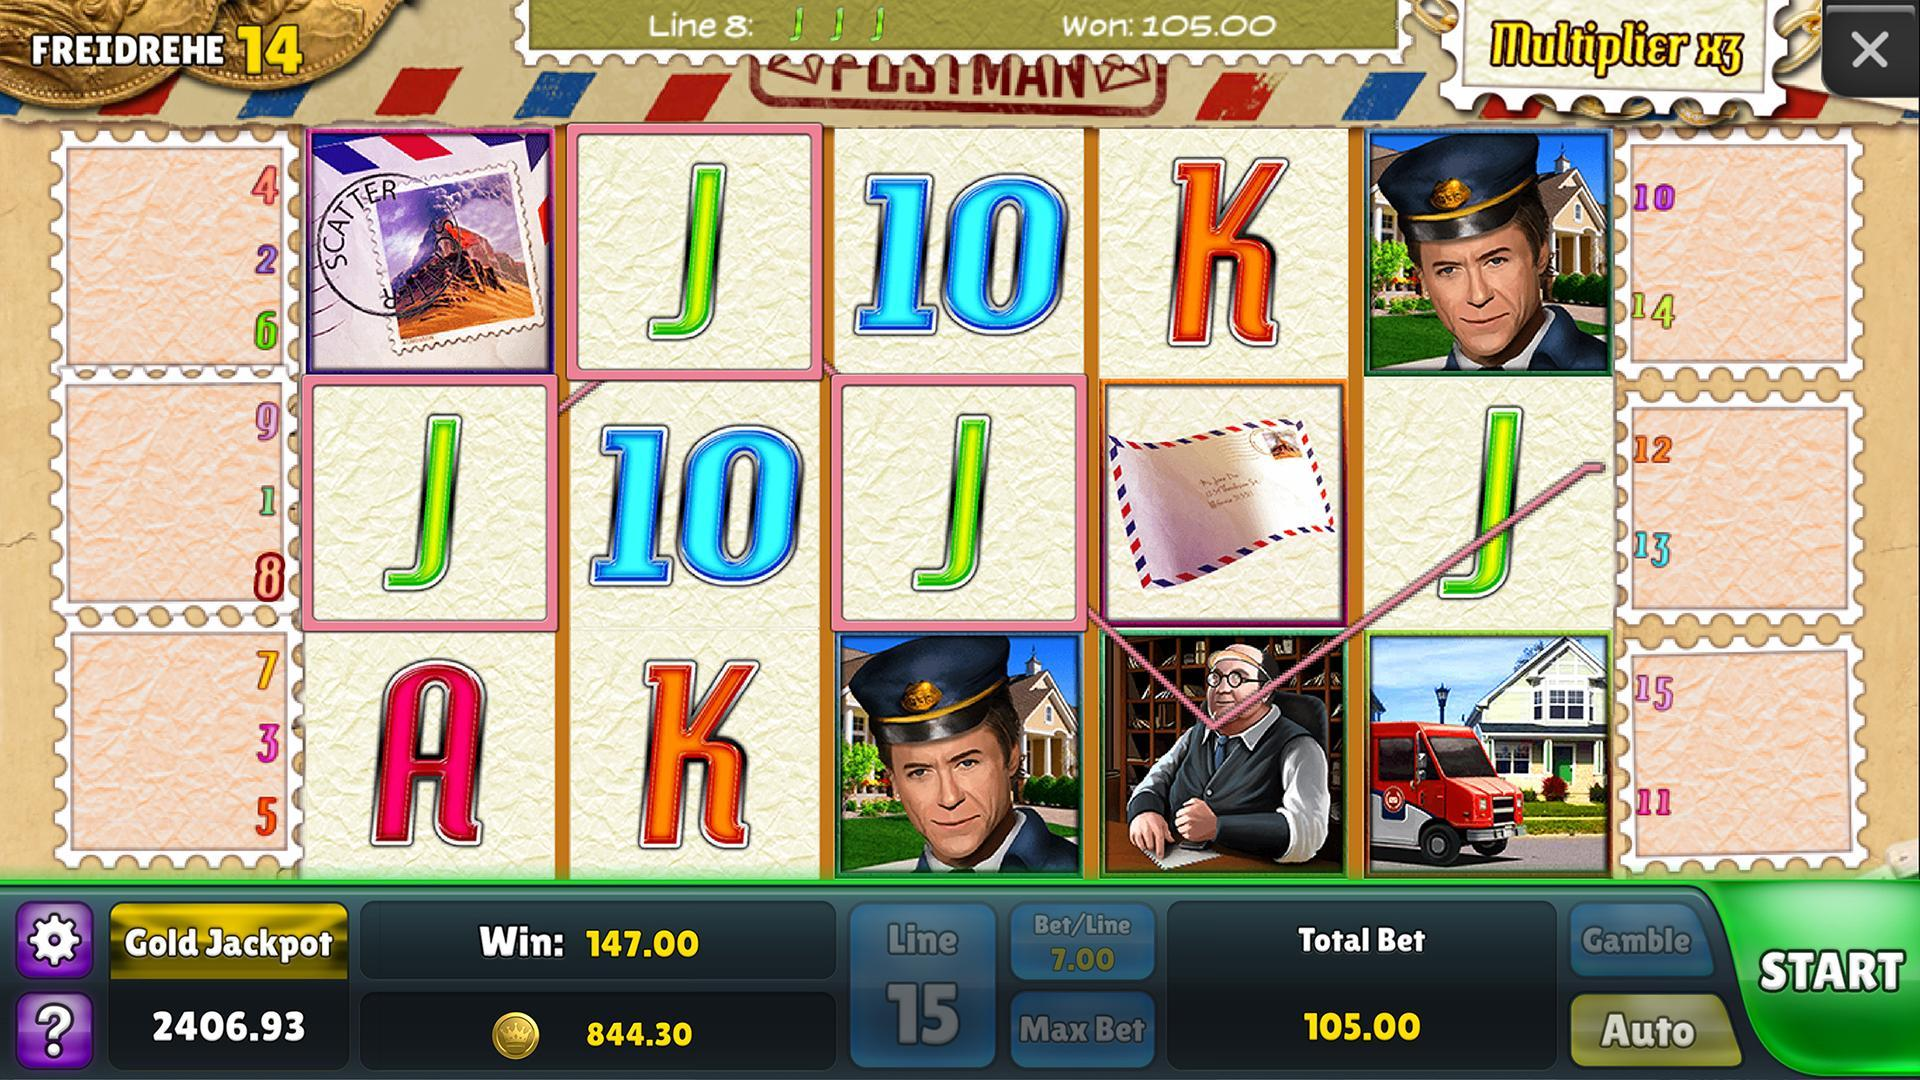 Postman Slots: Free Slot Games for Android - APK Download